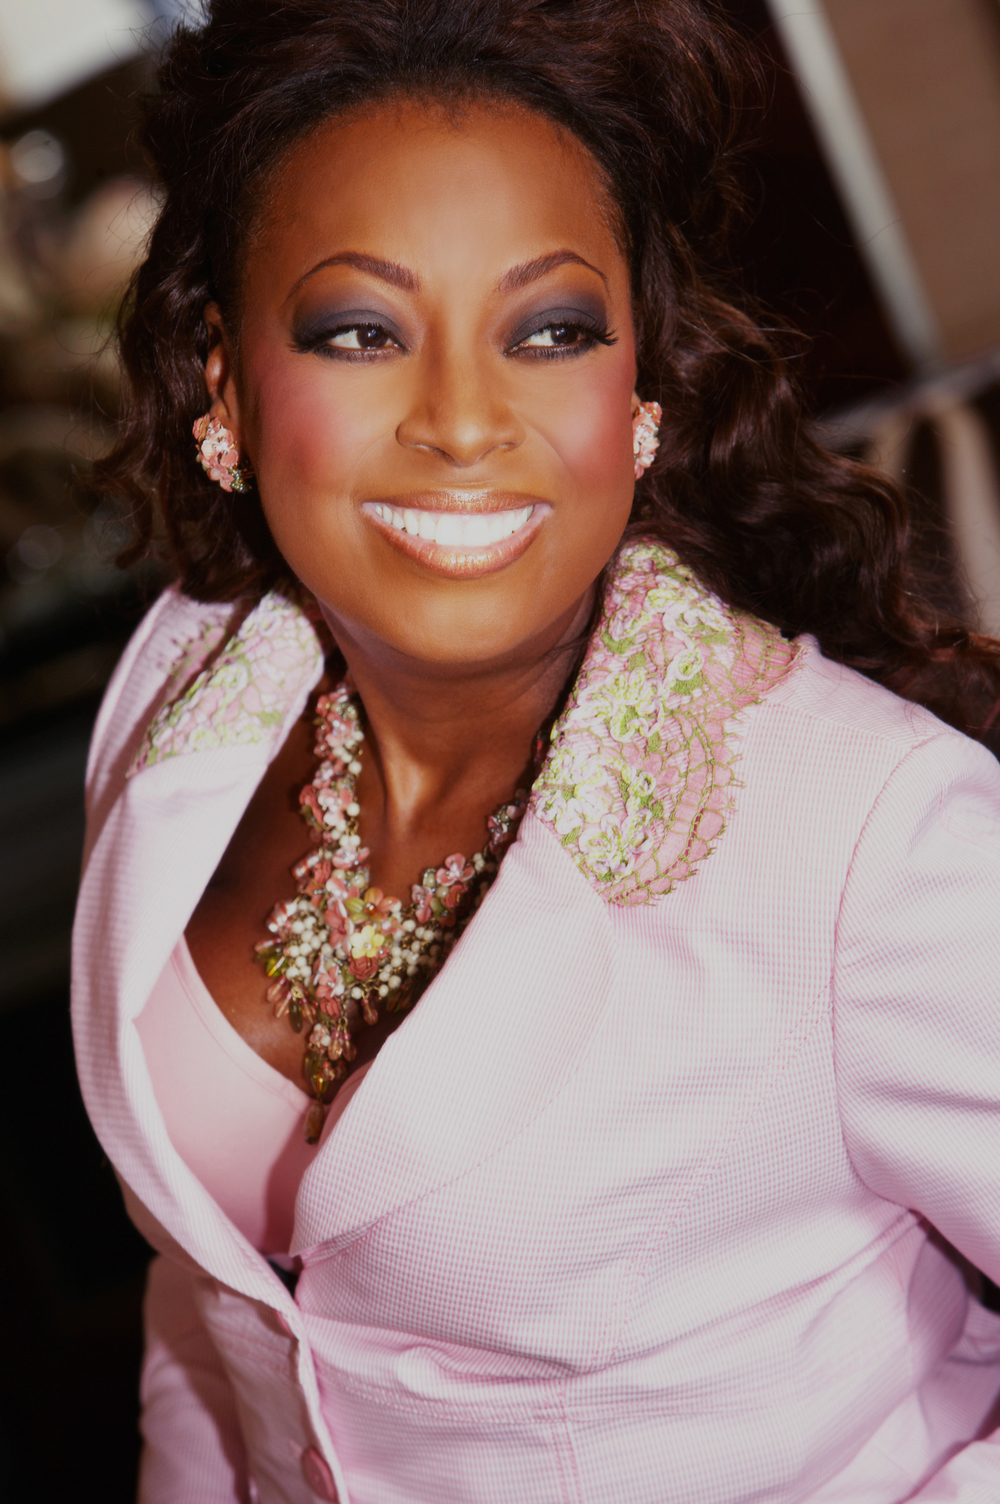 STAR JONES BOOK COVER